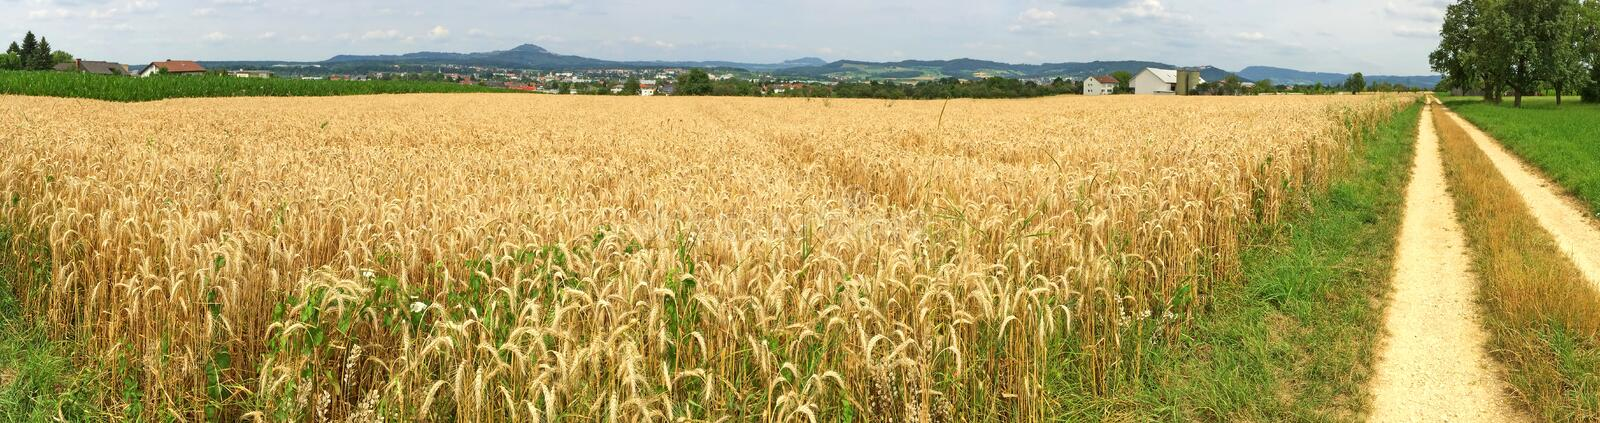 Field of ripe rye royalty free stock photo